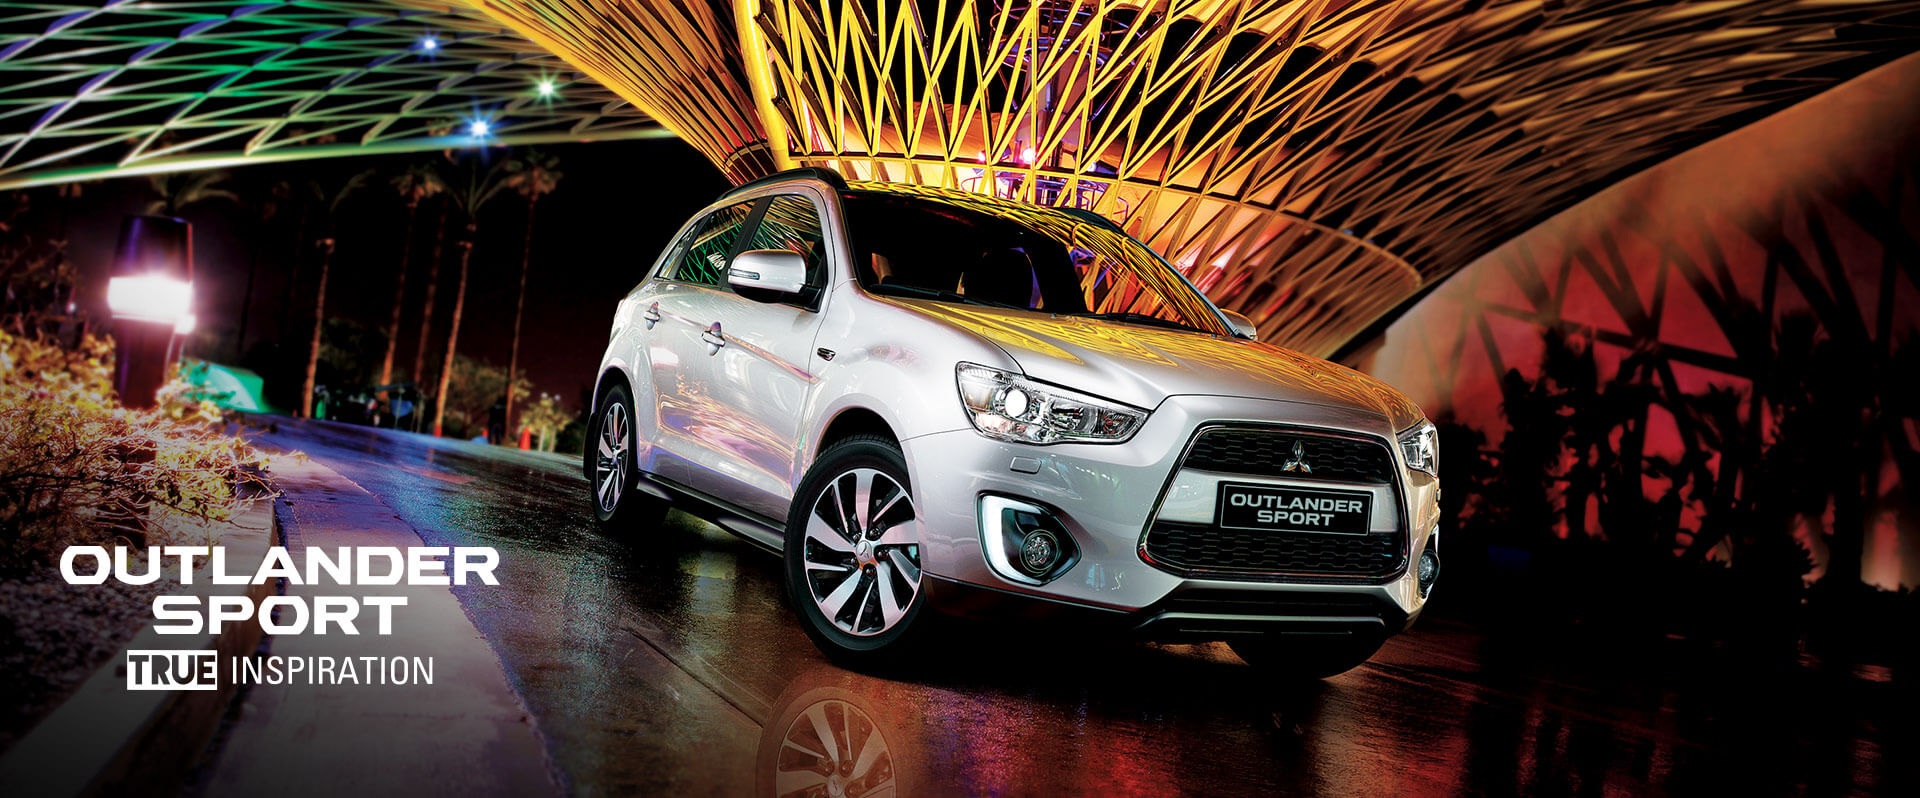 outlander-sport-crossover-5-cho-phong-cach-the-thao